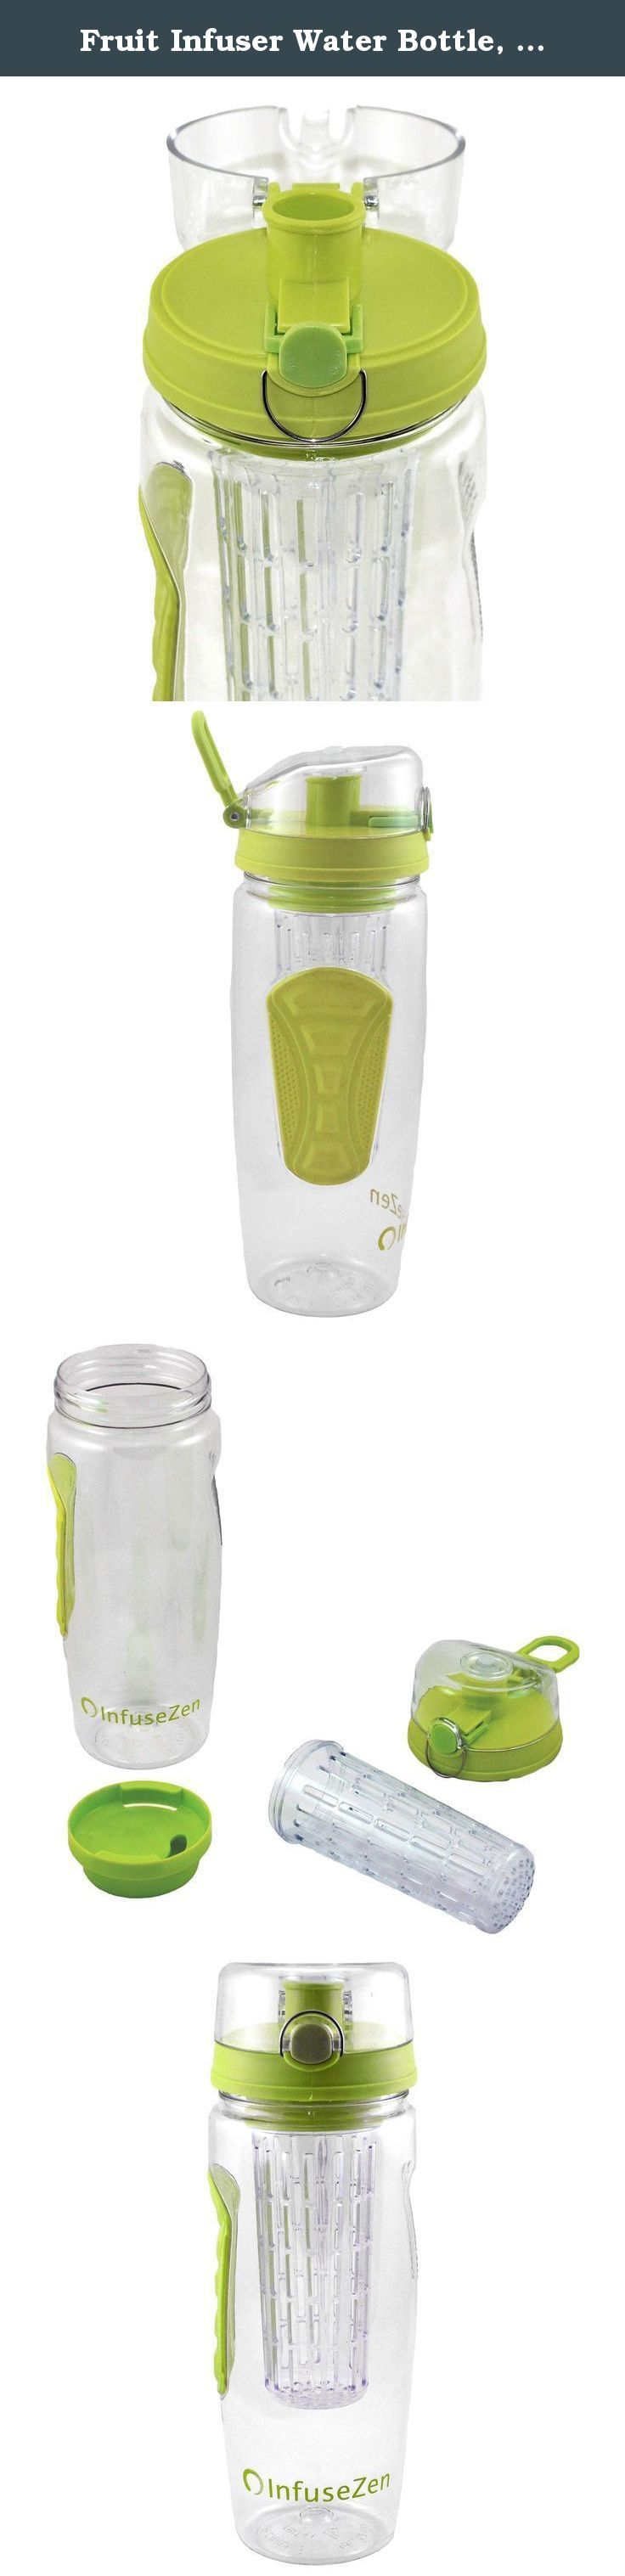 Fruit Infuser Water Bottle, 32oz Large BPA Free Infusion Bottle Available in Black & Green, Water Bottle for Sports, Yoga, Weight Loss and Healthy Living, Best Reusable Tritan Plastic Water Bottle with Flip Top and Handle, Shatterproof & Ecofriendly (green). Our shatter proof, BPA free fruit infuser water bottle is perfect for life on the go! The large 32oz bottle helps you get your recommended daily water intake fast, carry it with you wherever you go. It fits in most car cup holders and...